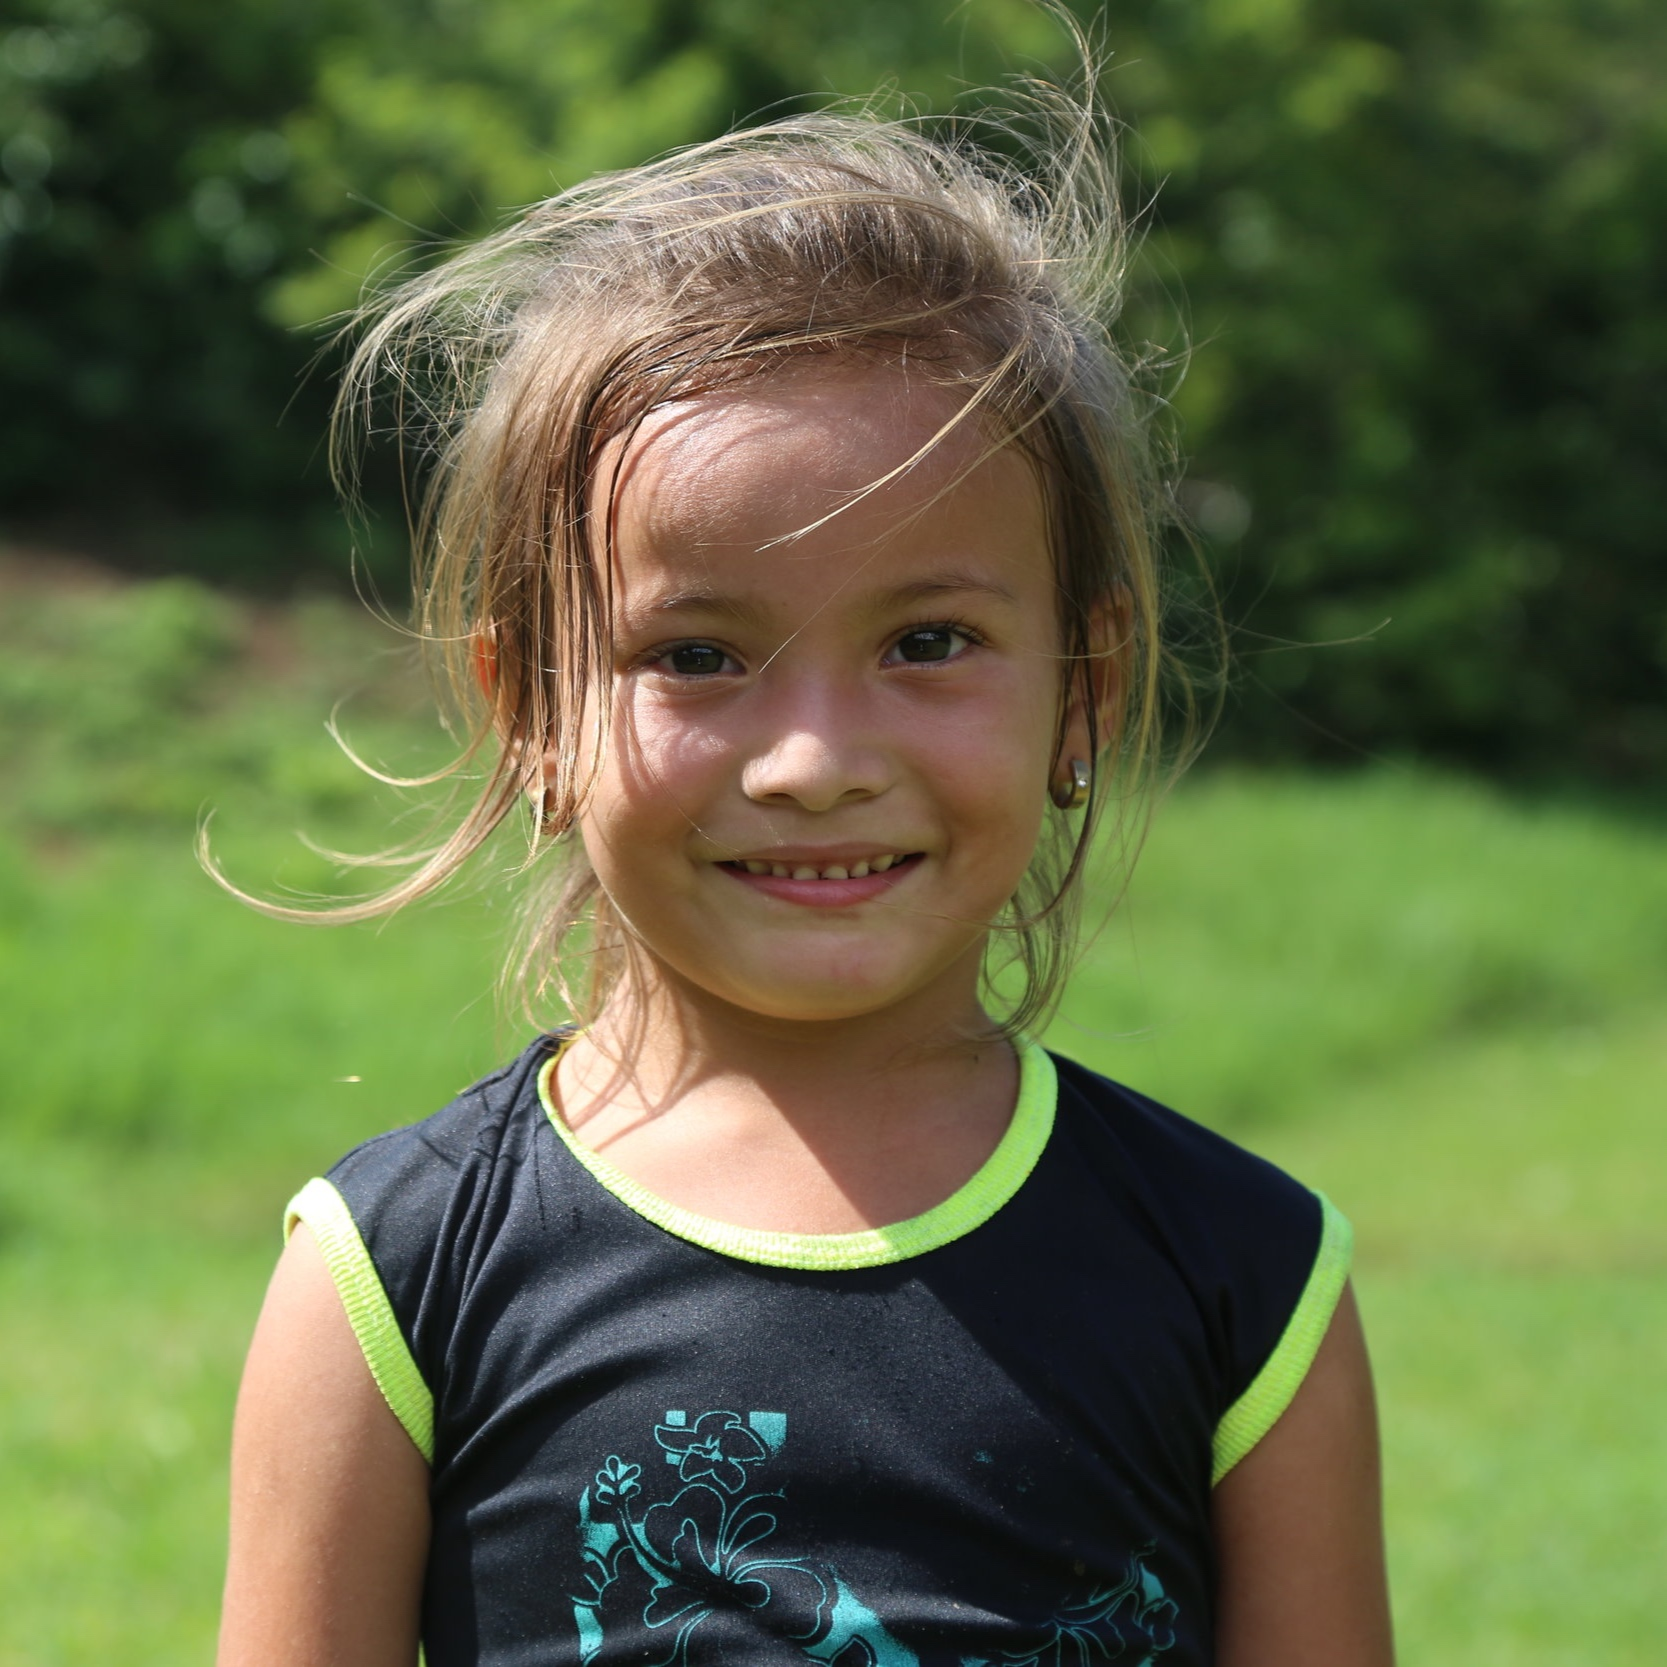 - MONTHLY COMMITMENTChild Sponsorship is a minimum of $75 monthly commitment. Your gift goes directly towards raising and supporting your child.